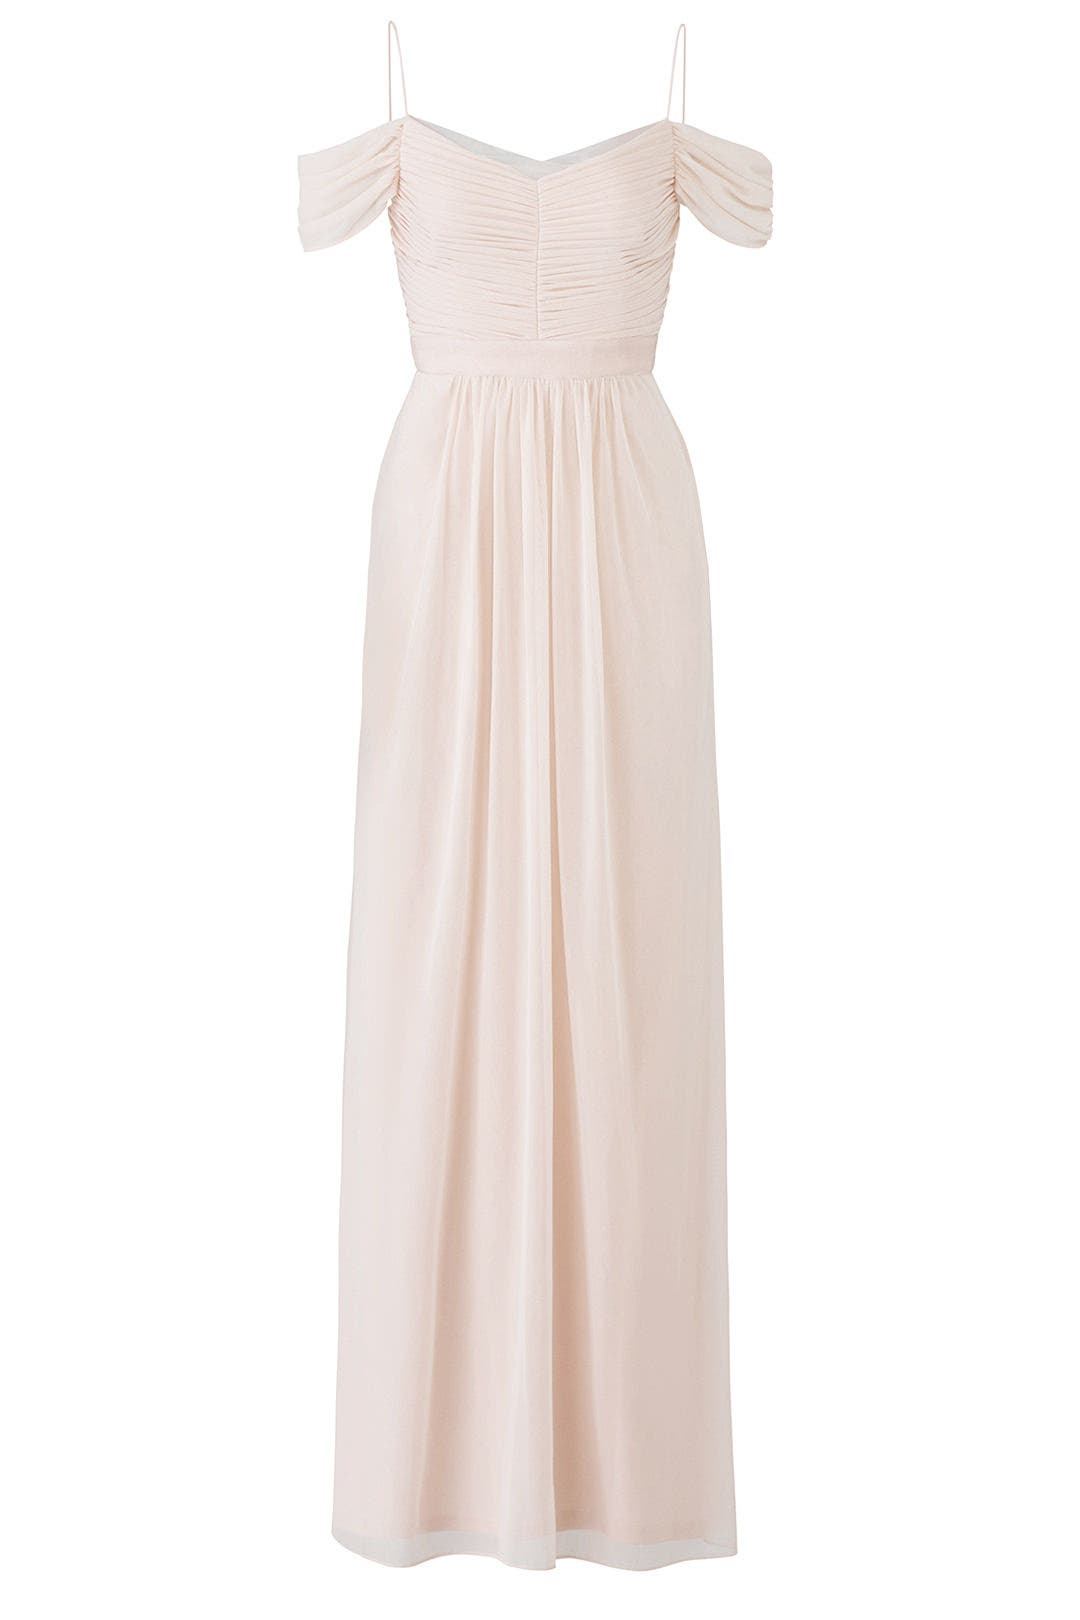 Blush Drape Gown by Adrianna Papell for $50 - $80 | Rent the Runway